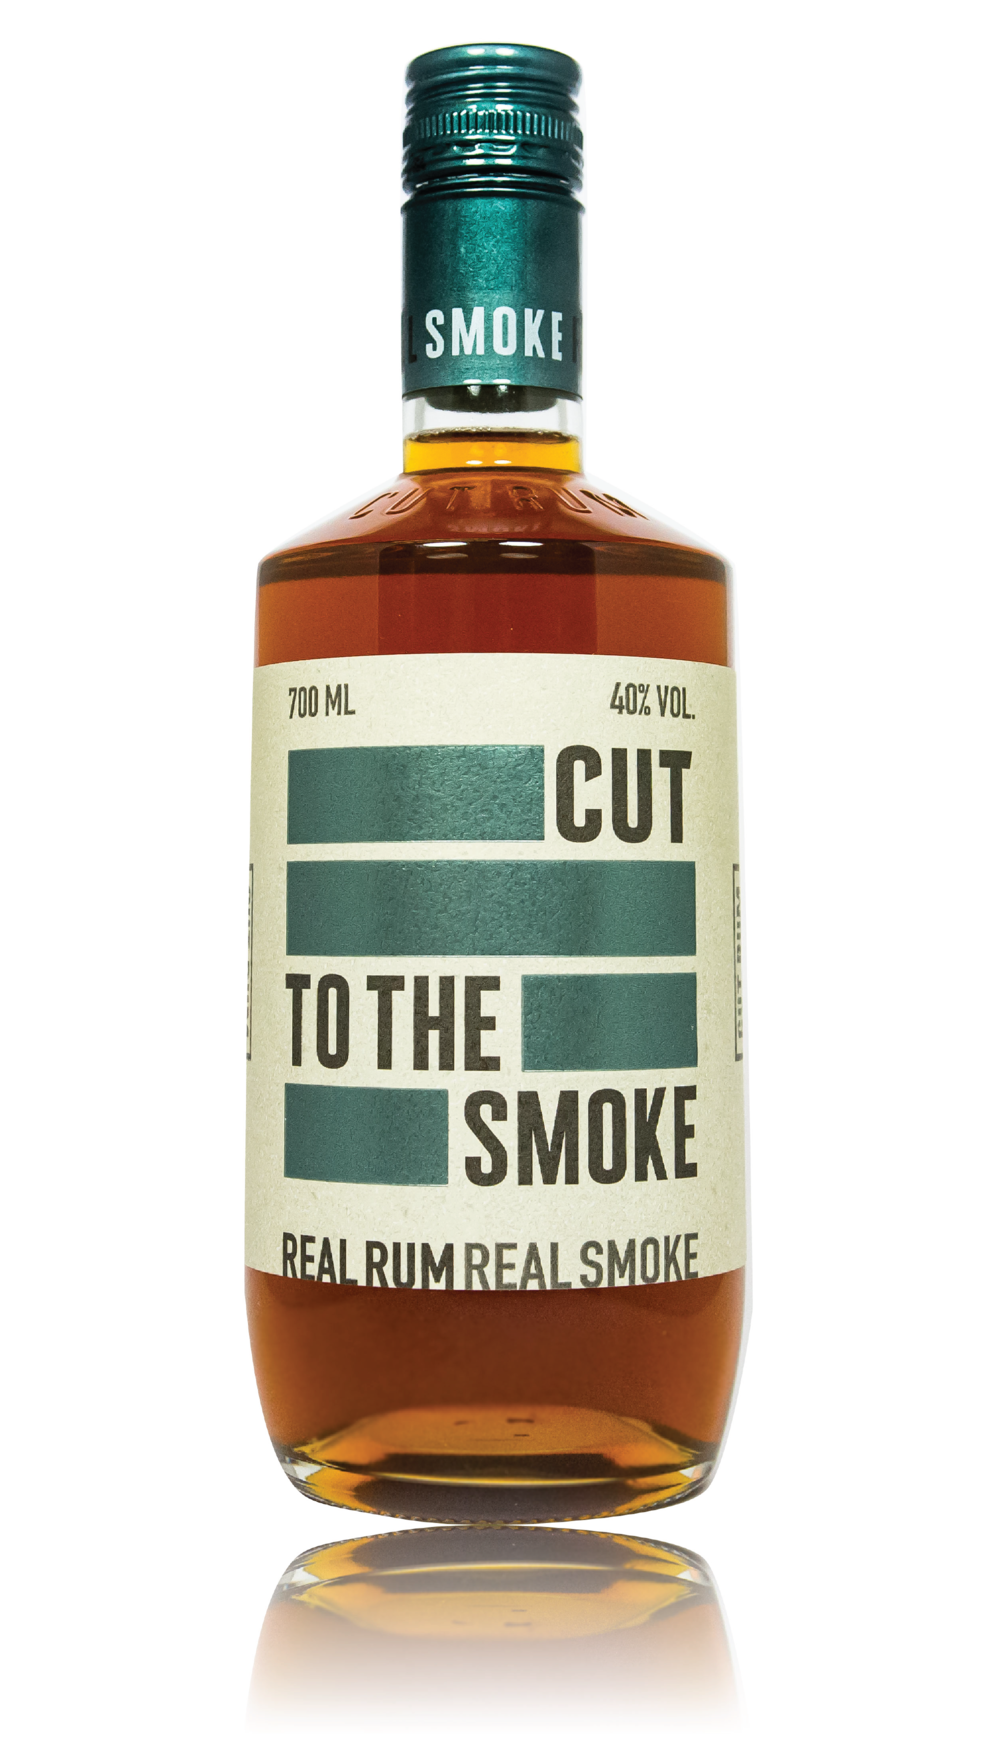 CUT smoked rum -small- reflection-01-01-01-01-01.png